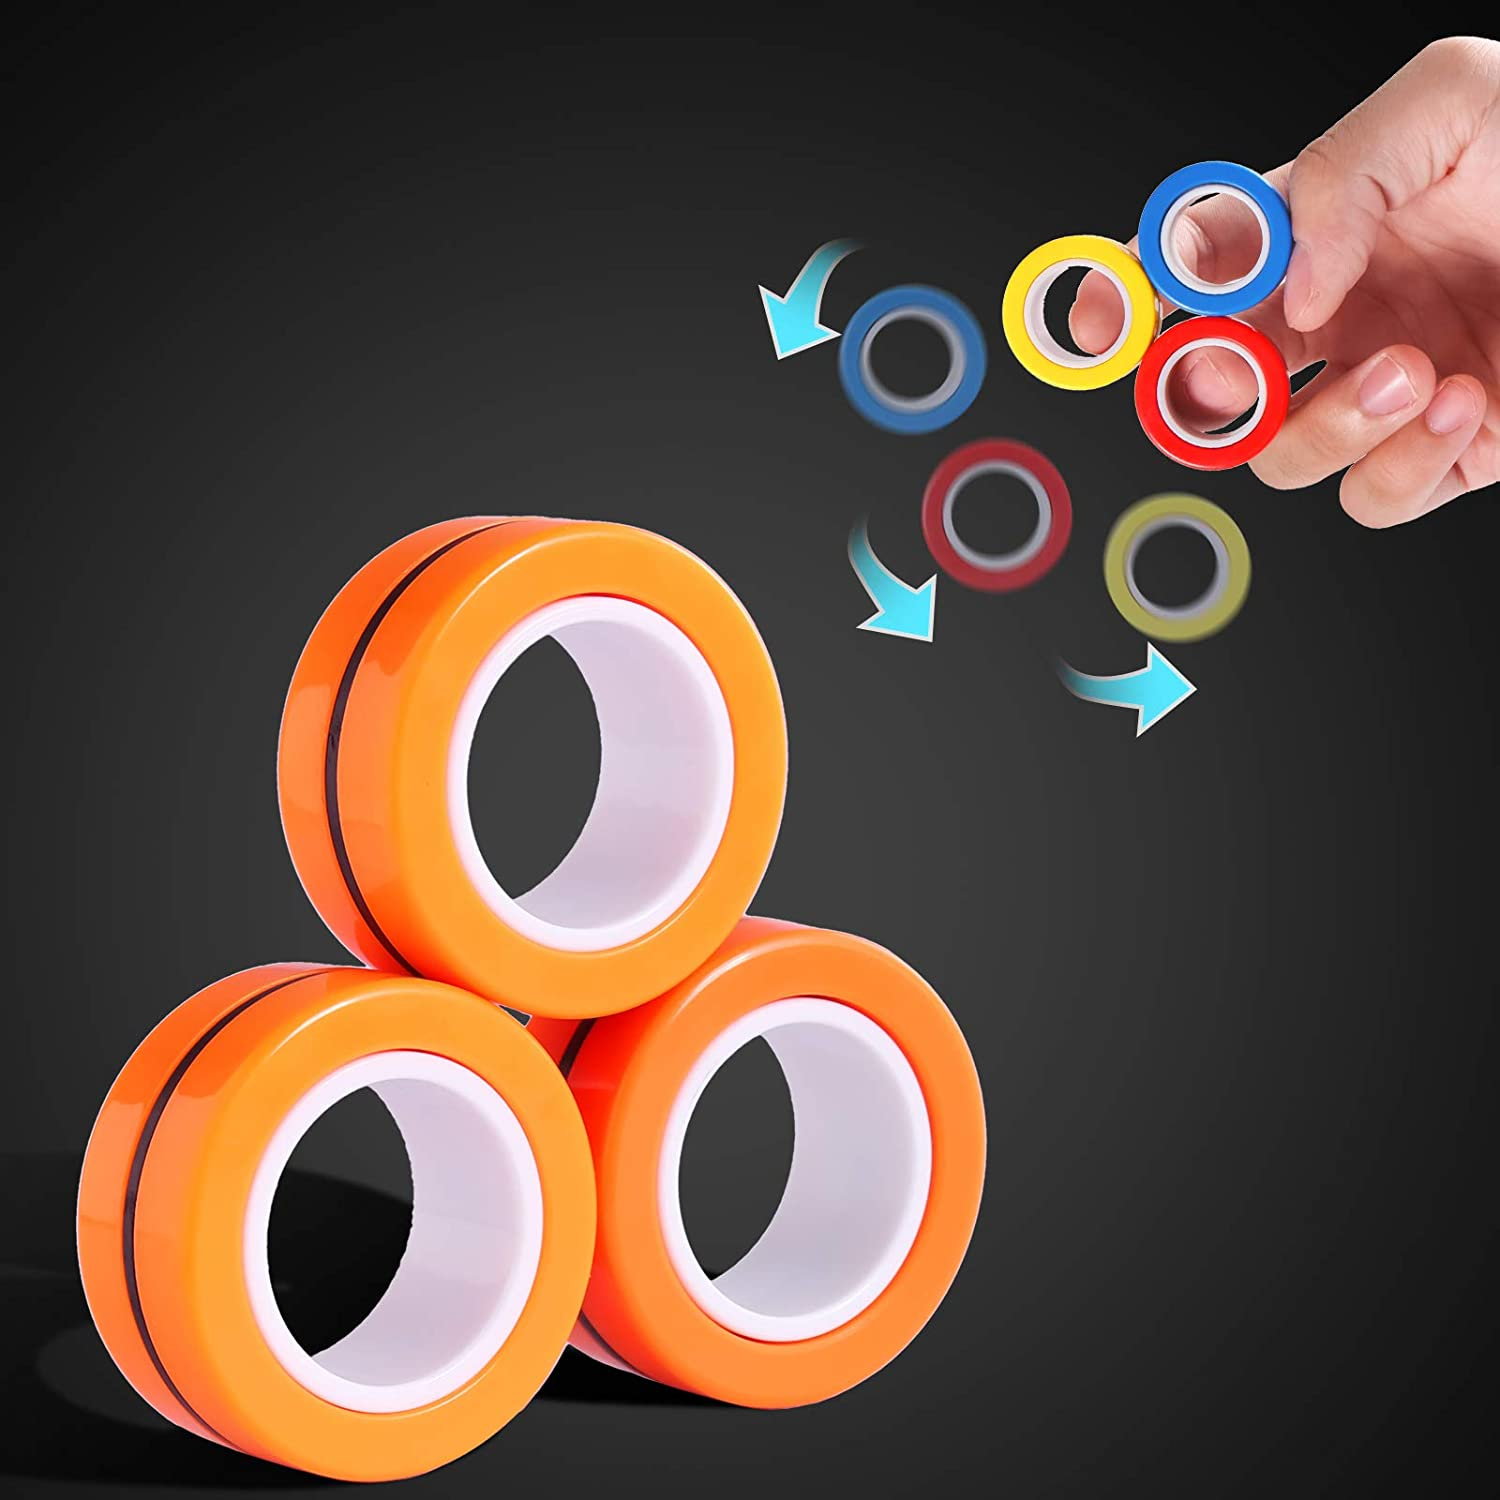 Fingers Magnetic Rings Toys, Magnet Toy Ring Magnet Decompression Magnetic Magic Fidget Rings Magnetic Game Magic Magnetic Toy Durable Unzip Toys Magnetic Ring Magic Trick for Adults Kids